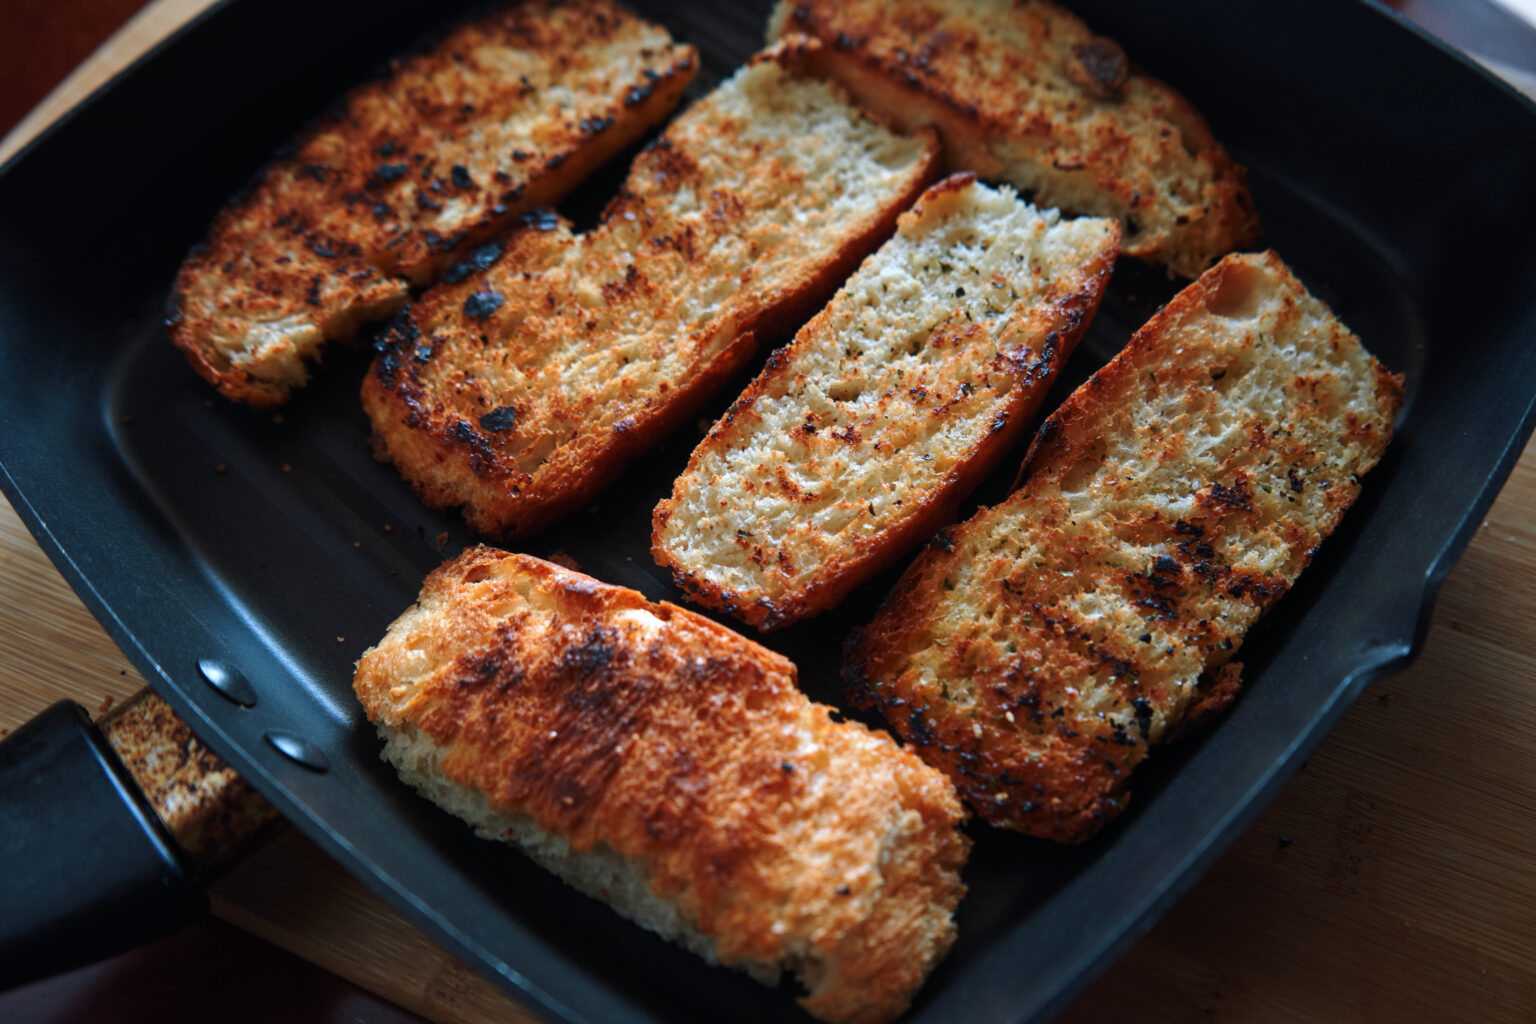 the-crispy-seared-bread-in-the-skillet-9ARBQRN